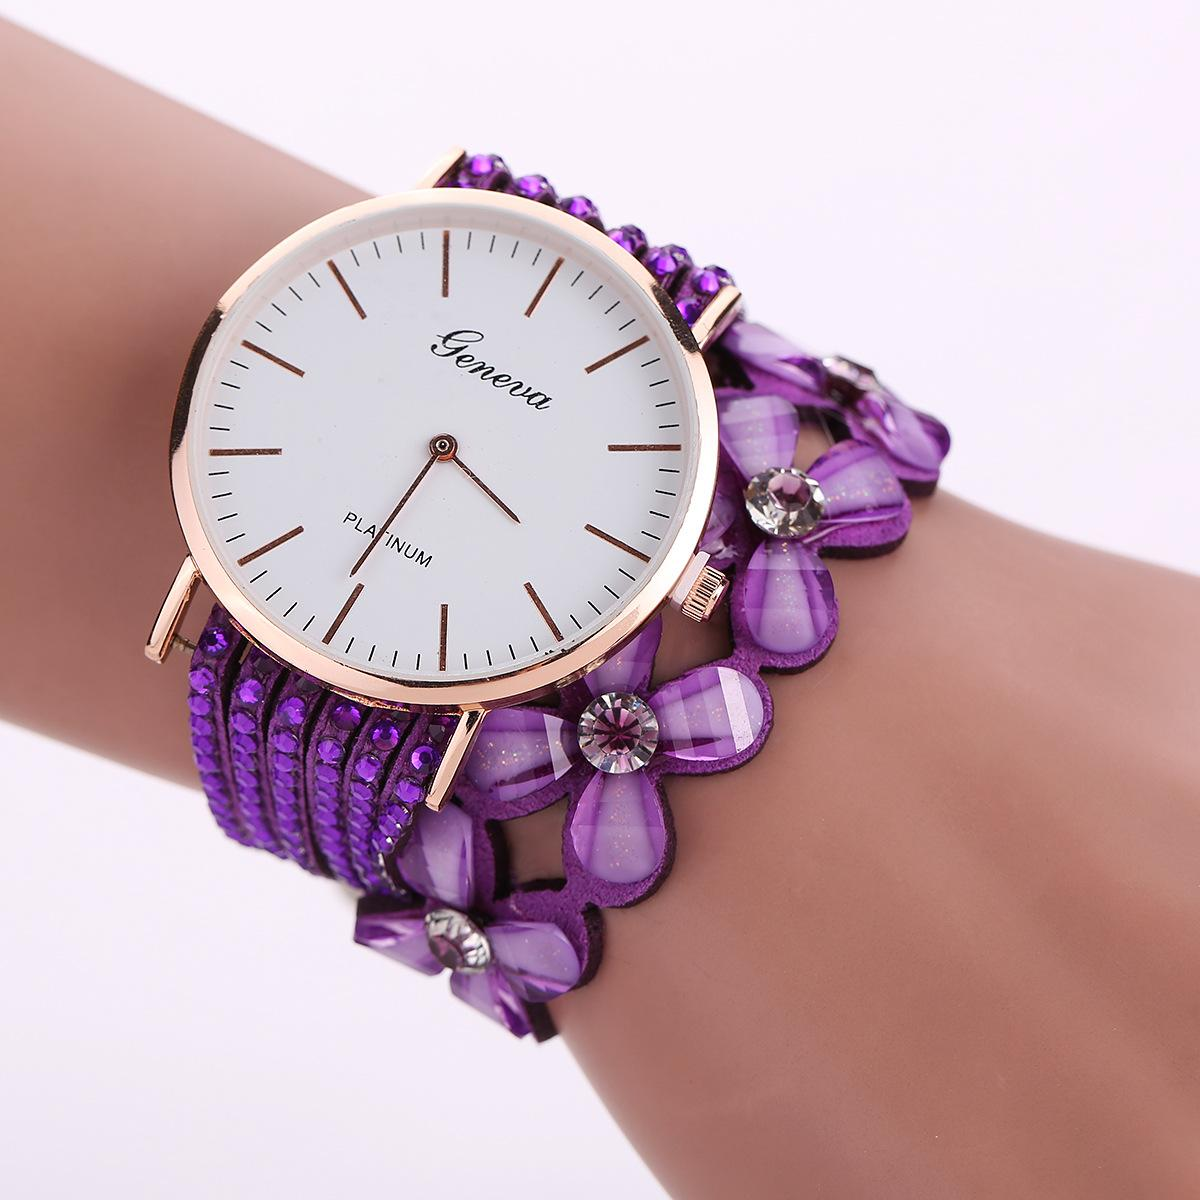 bb58d66ab01 Ladies Fashion Trends in Europe And America Rose Gold Alloy Bracelet Watch  Dial Diamond Watches Fashion Watch Flowers Watch The Timer Business Watch  Online ...